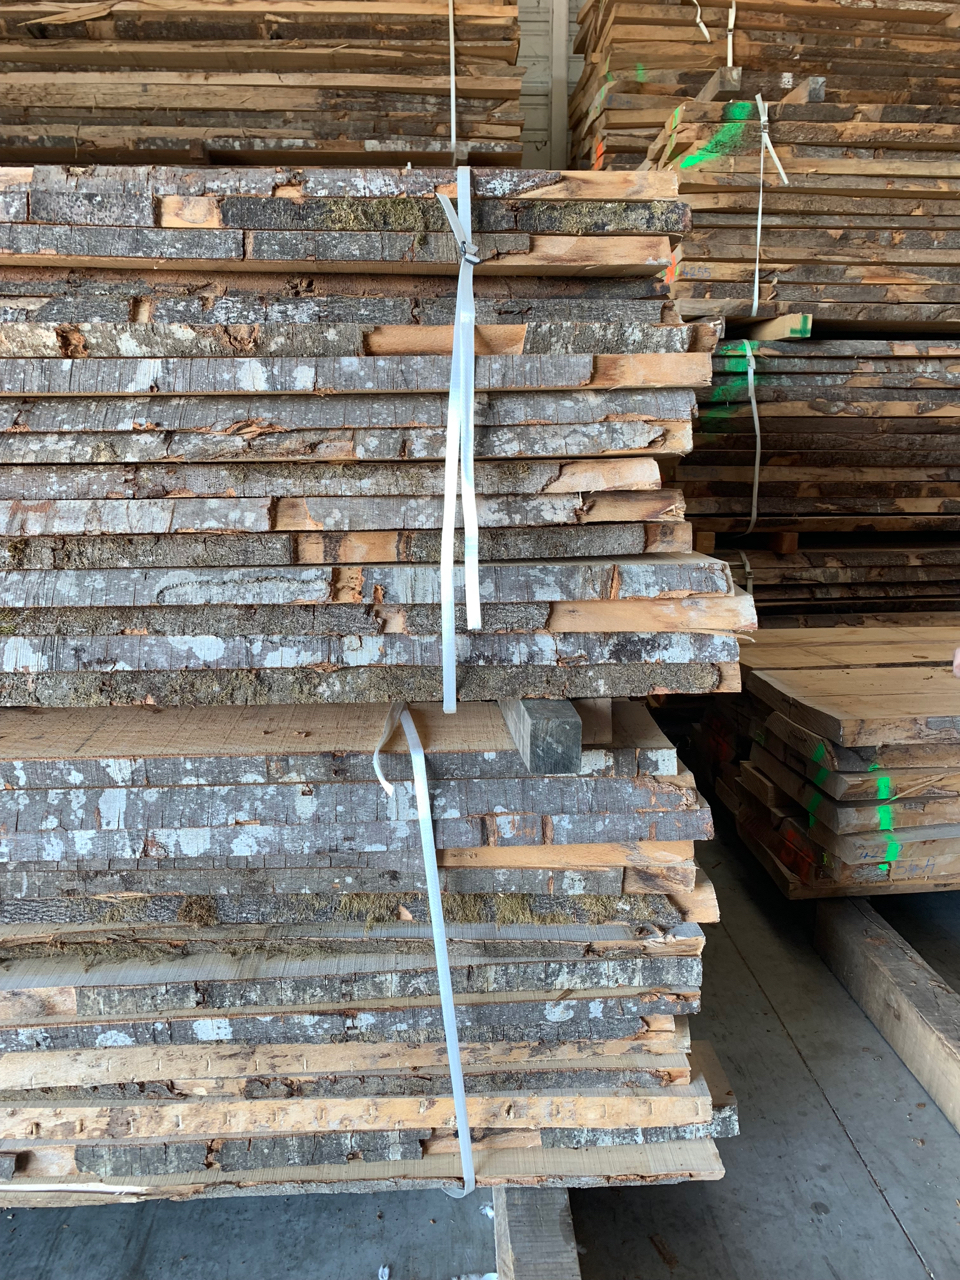 Hardwood from FSC-certified forests is left to dry for years prior to cutting.